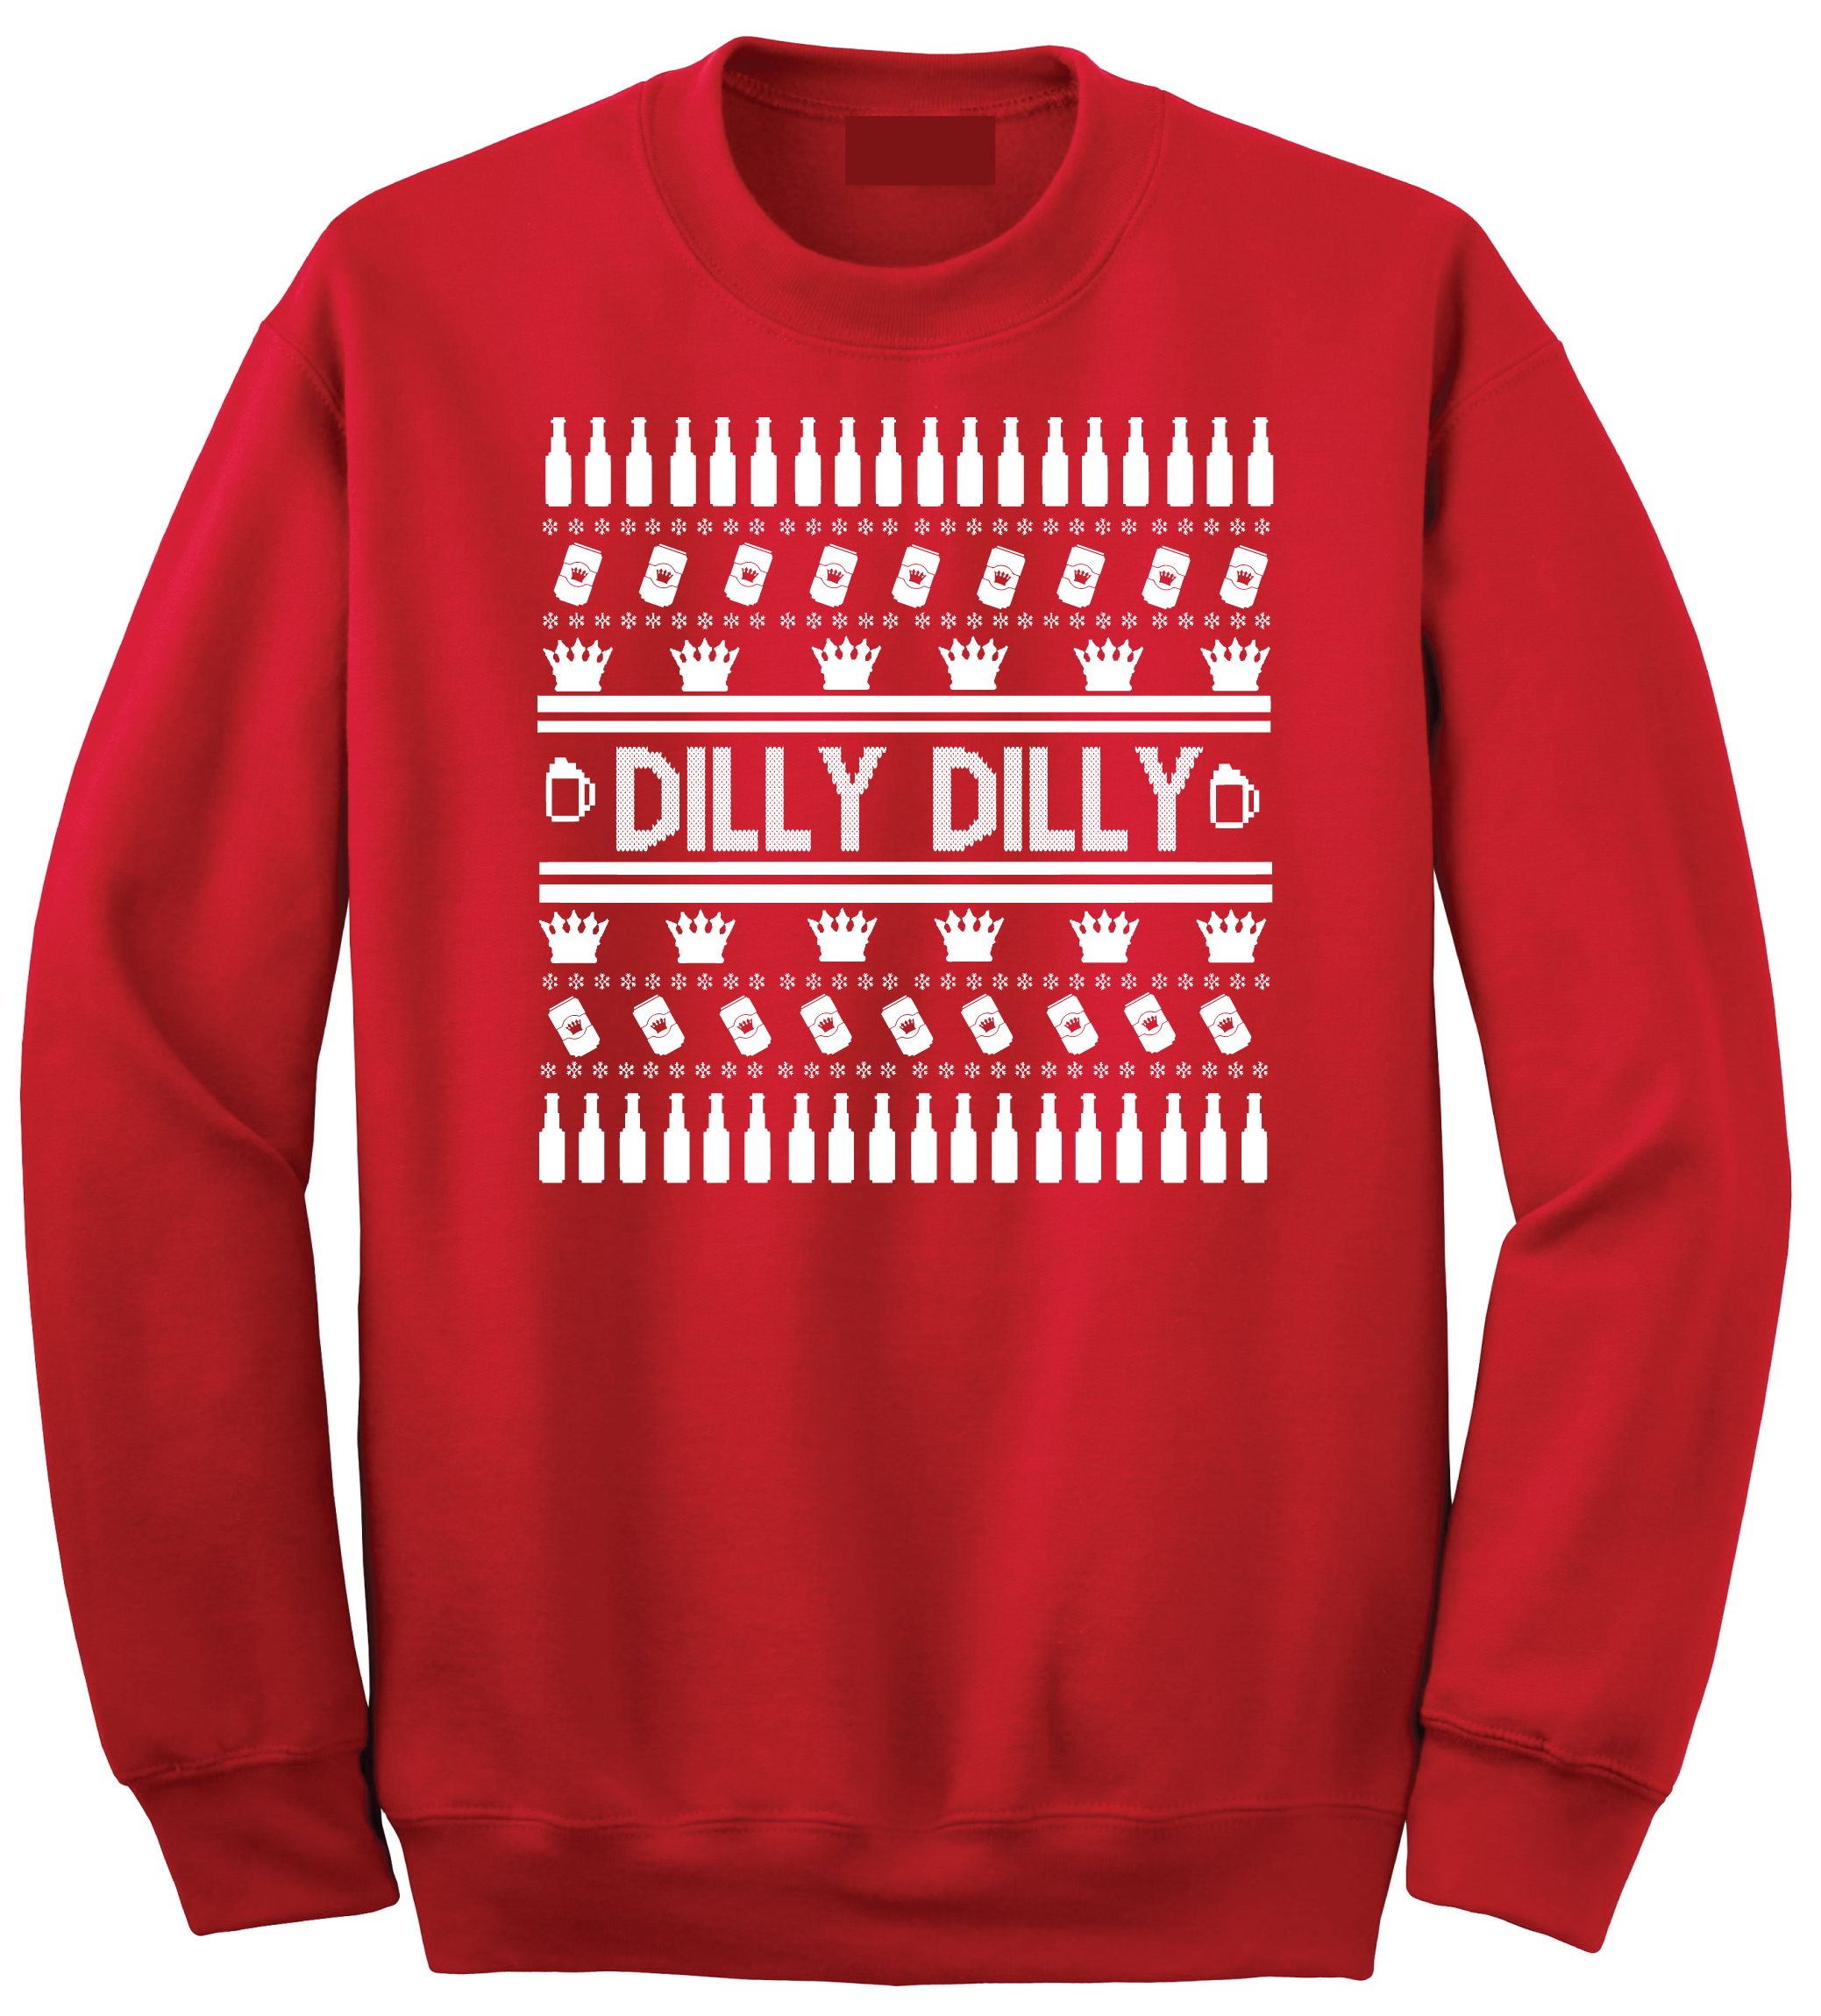 Dilly Dilly Ugly Christmas Sweater Shirt |